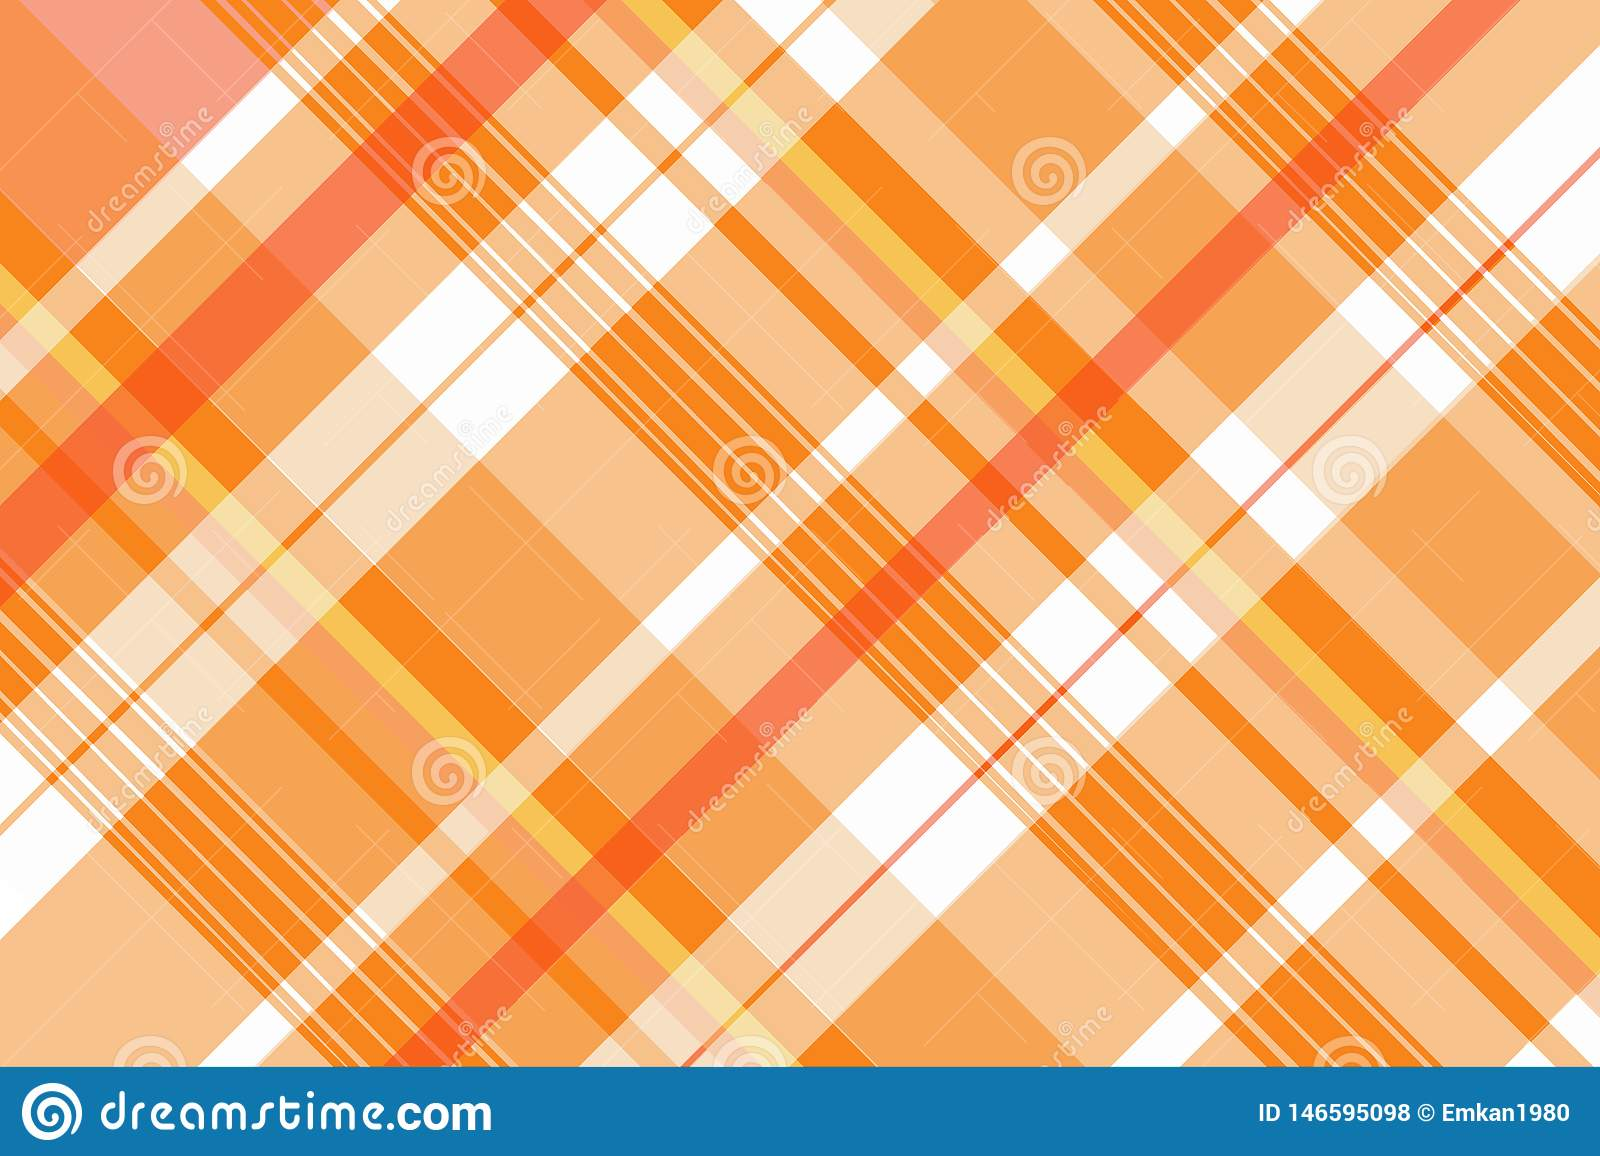 Seamless tartan plaid pattern. Texture for - plaid, tablecloths, clothes, shirts, dresses, paper, bedding, blankets, quilts and